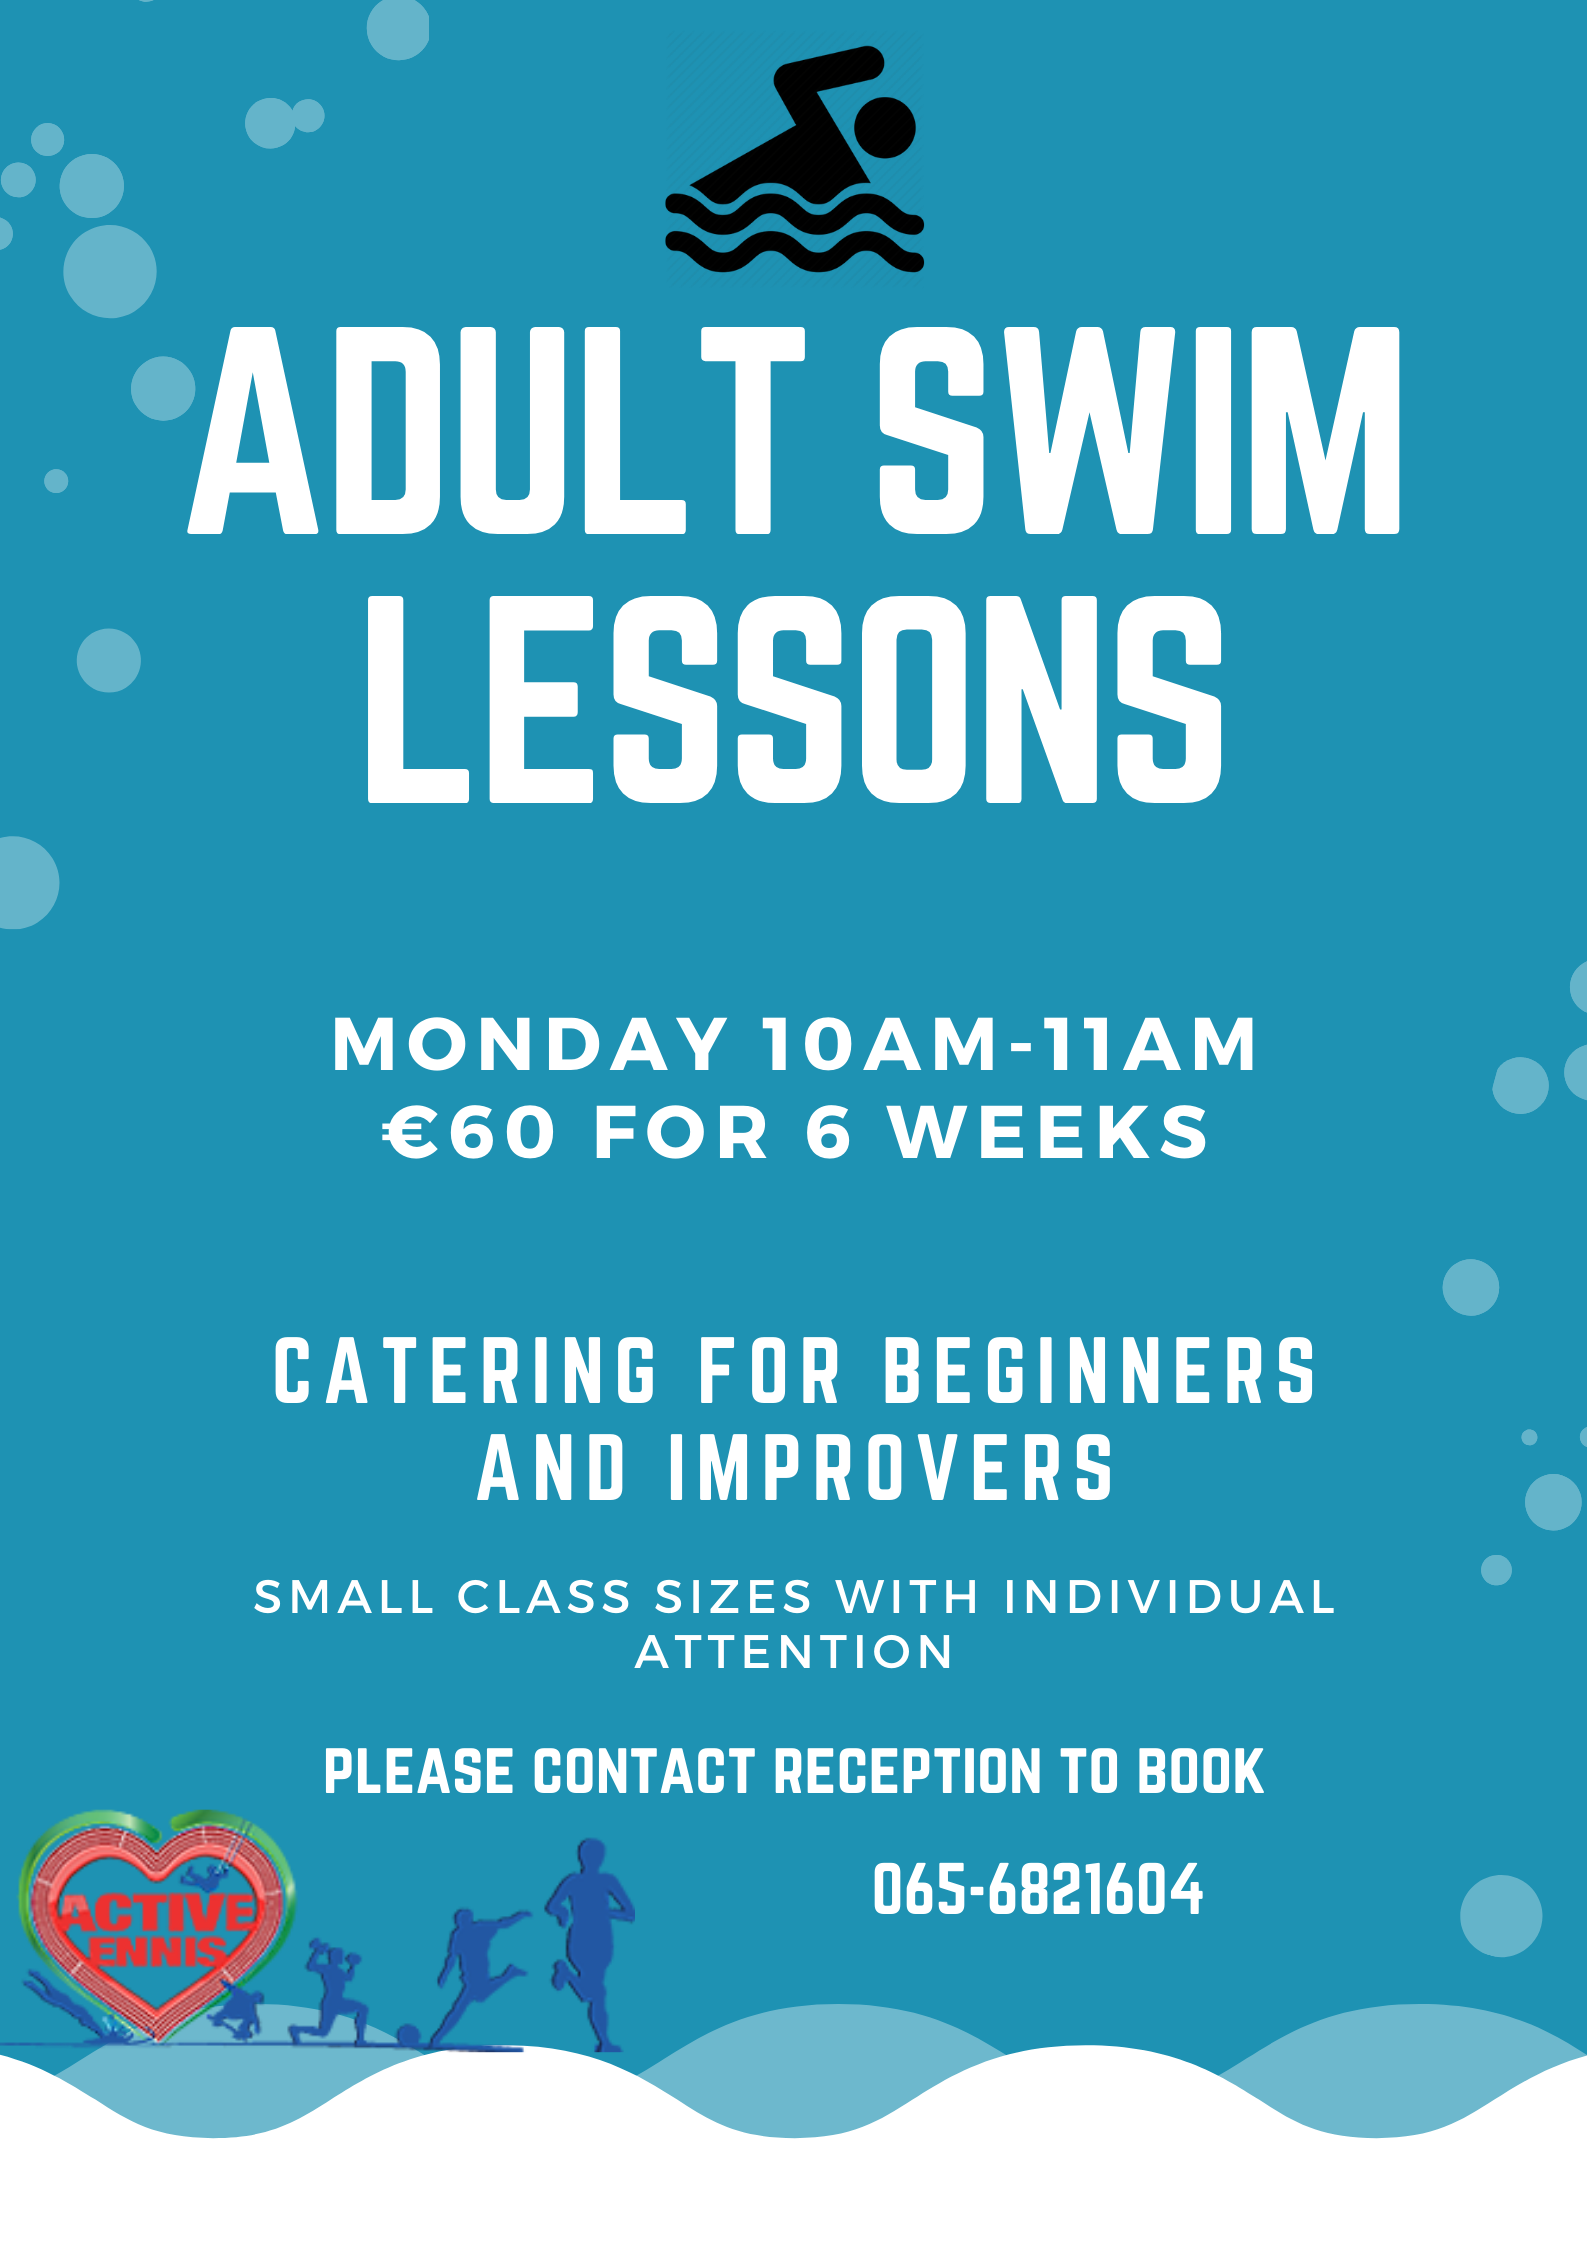 Adult Swim Lessons